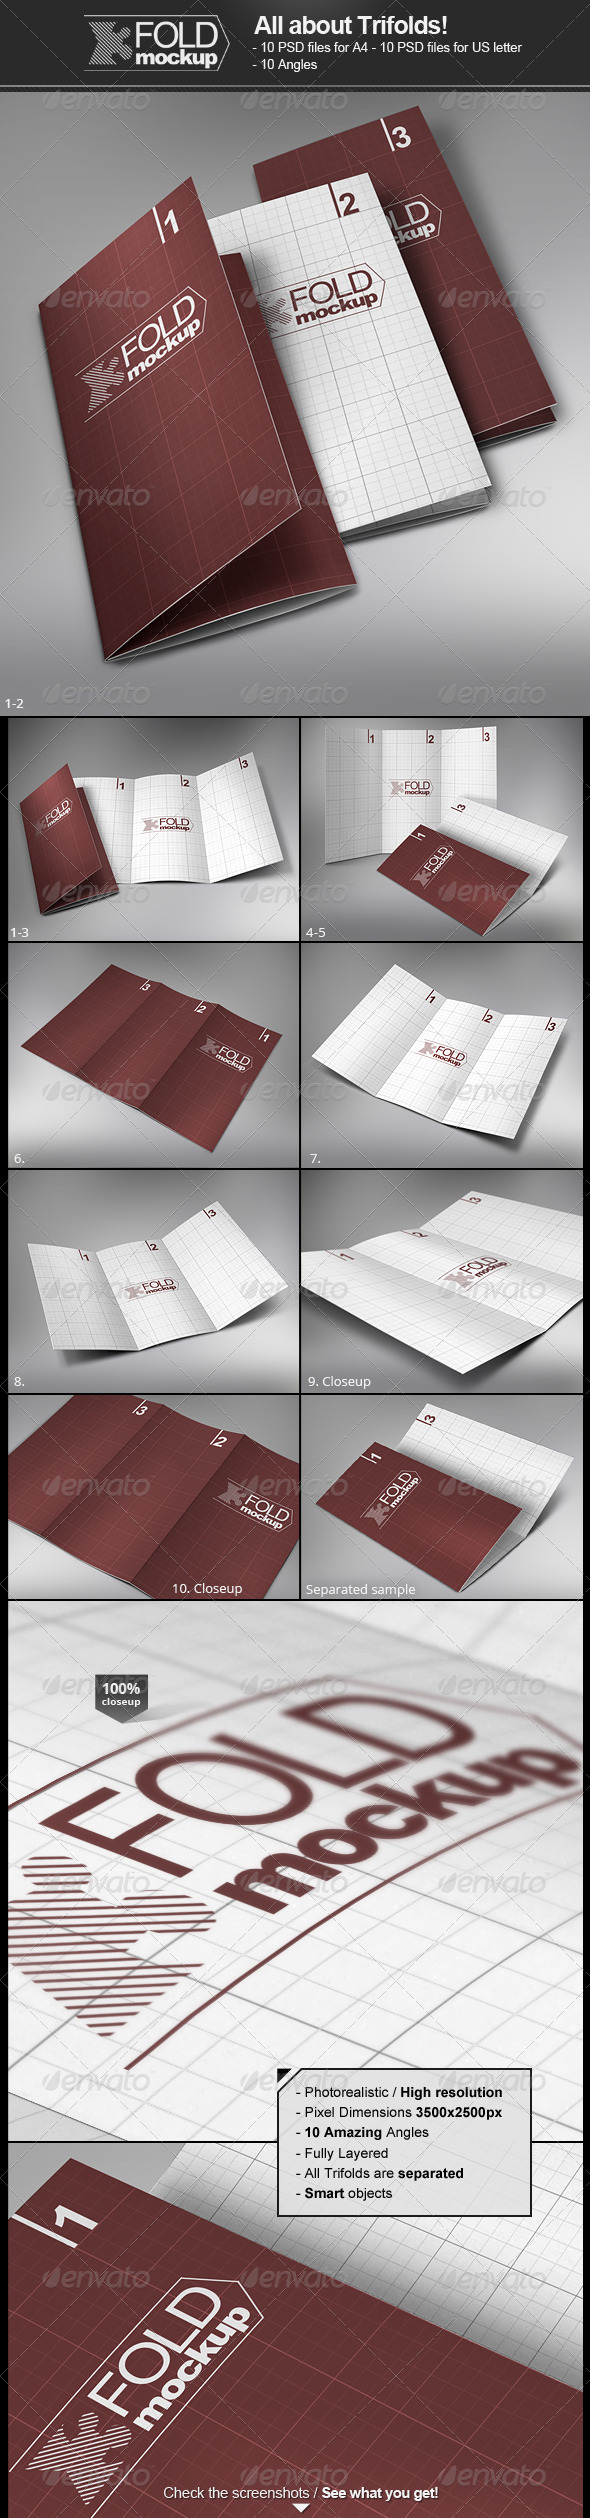 GraphicRiver Trifold Brochure Mock-Up 3068068